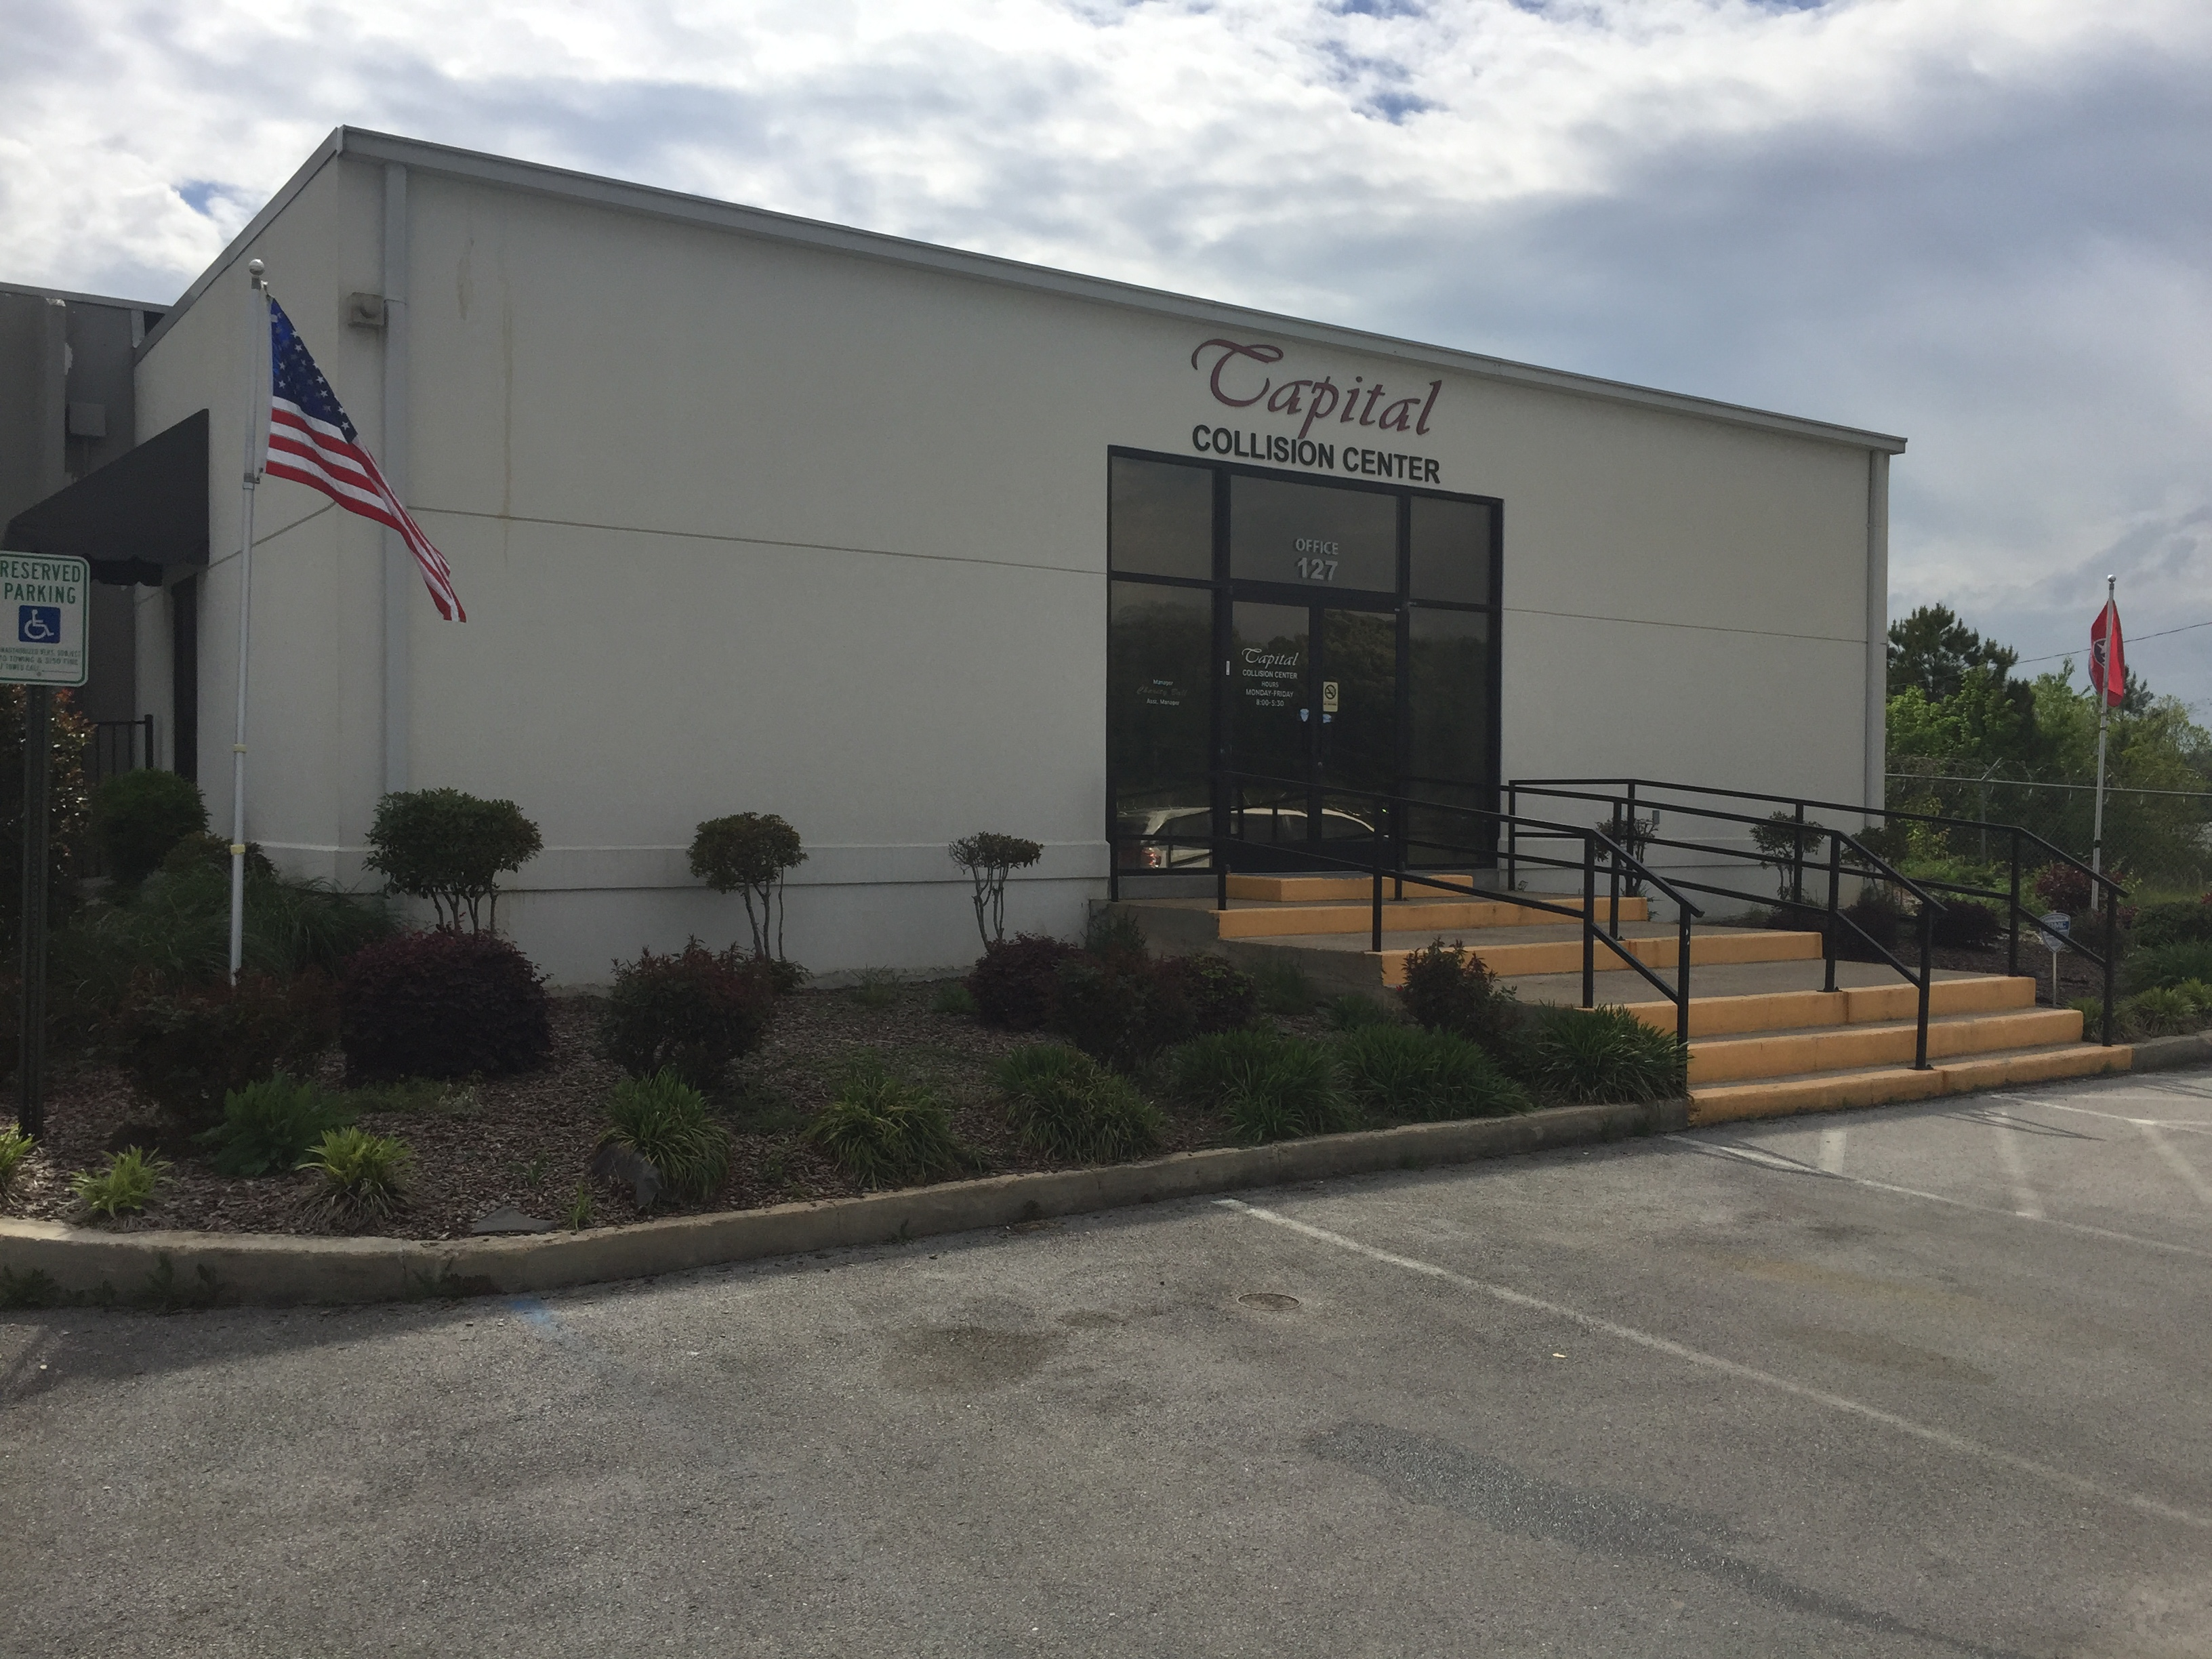 Capital Toyota Body Shop and Collision Center - Chattanooga TN.jpg